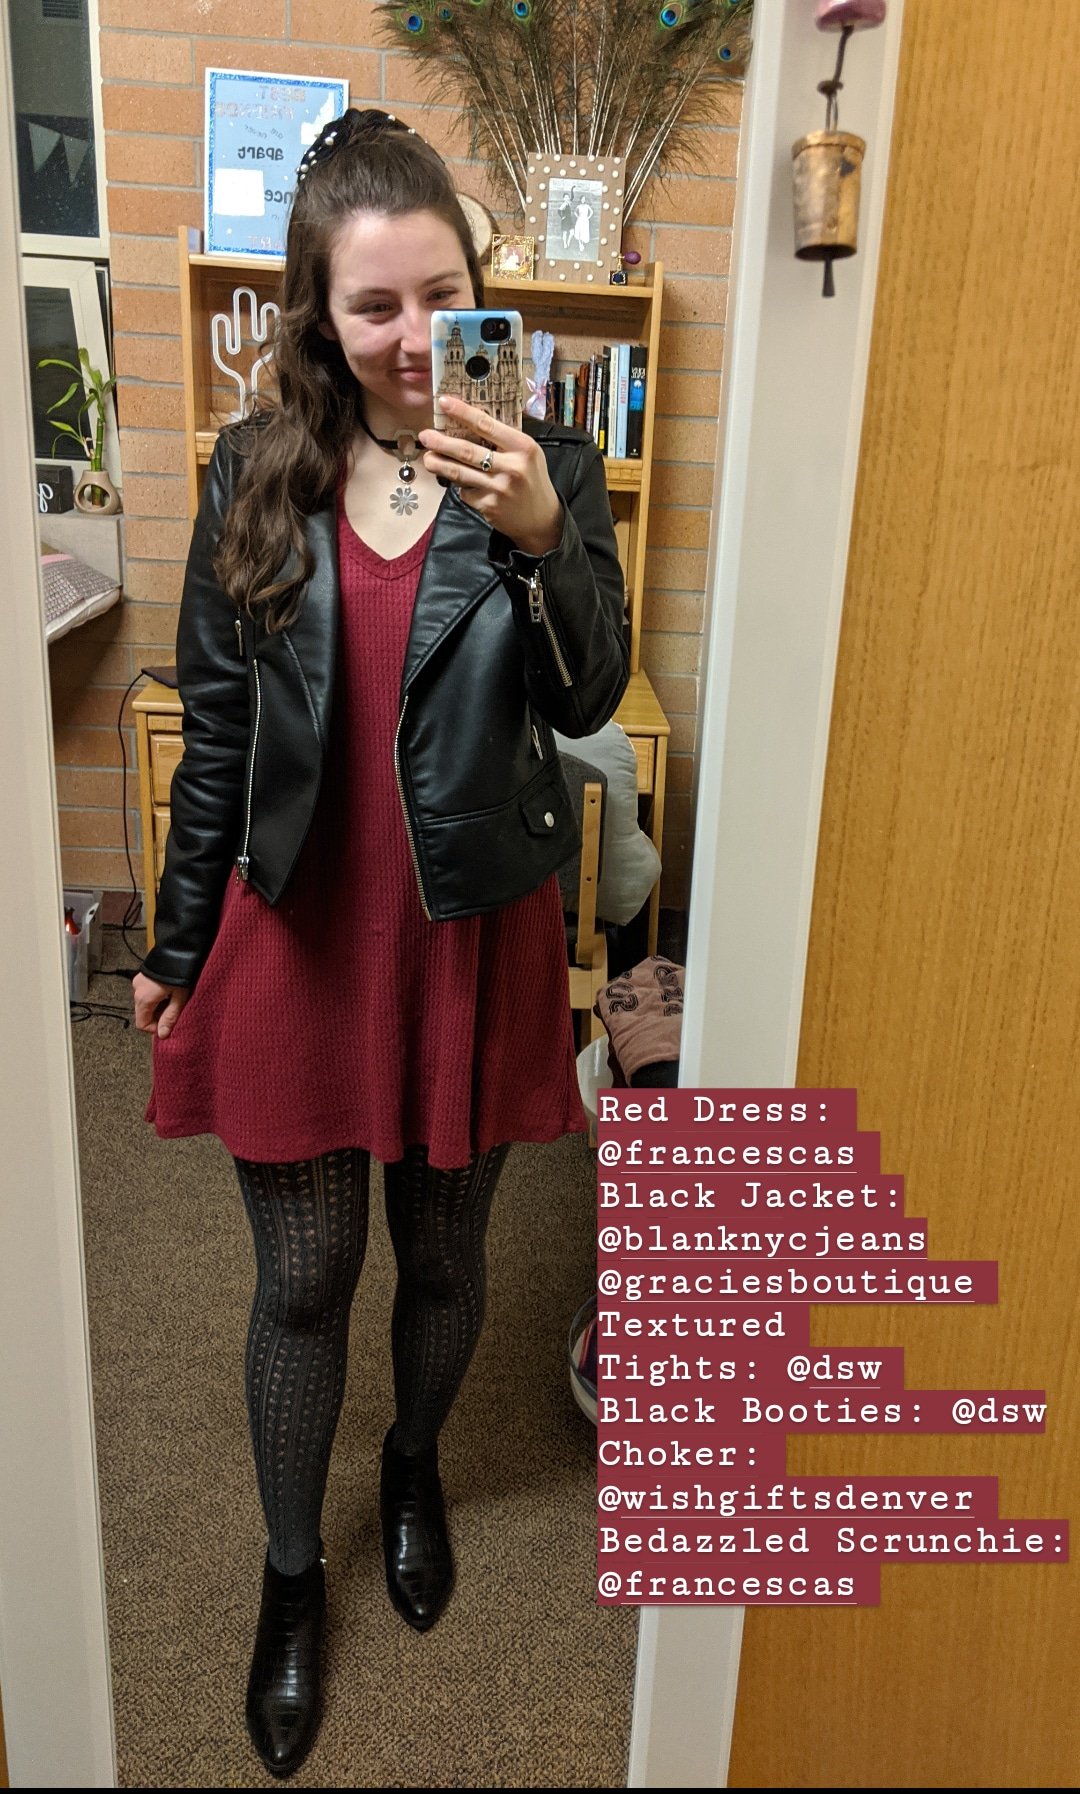 red dress, black pleather jacket, edgy outfit